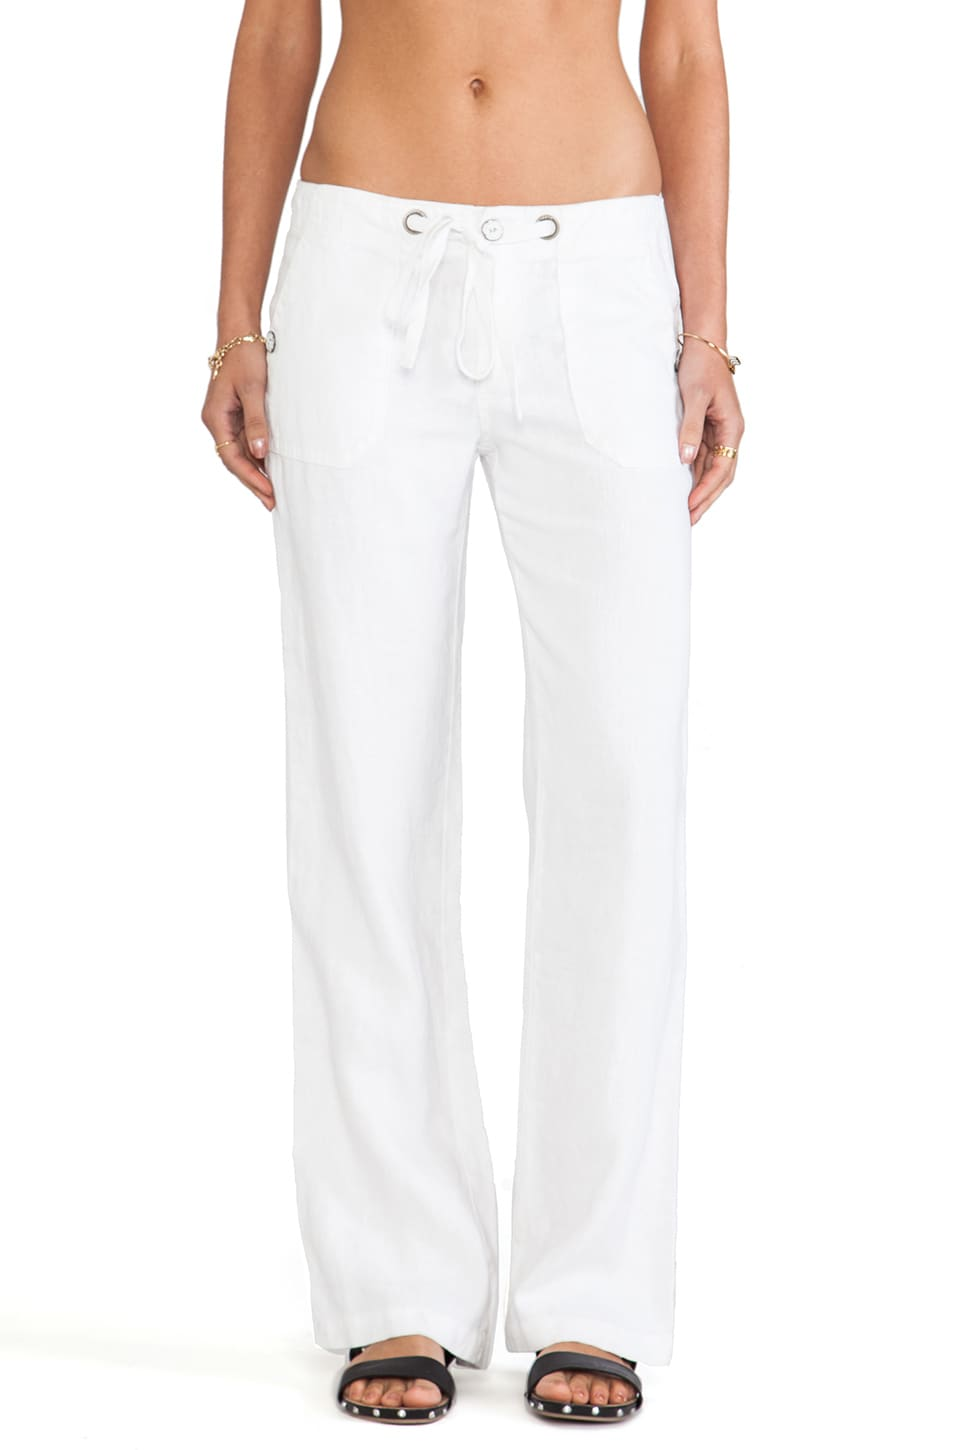 Sanctuary New Beach Comber Pant in White